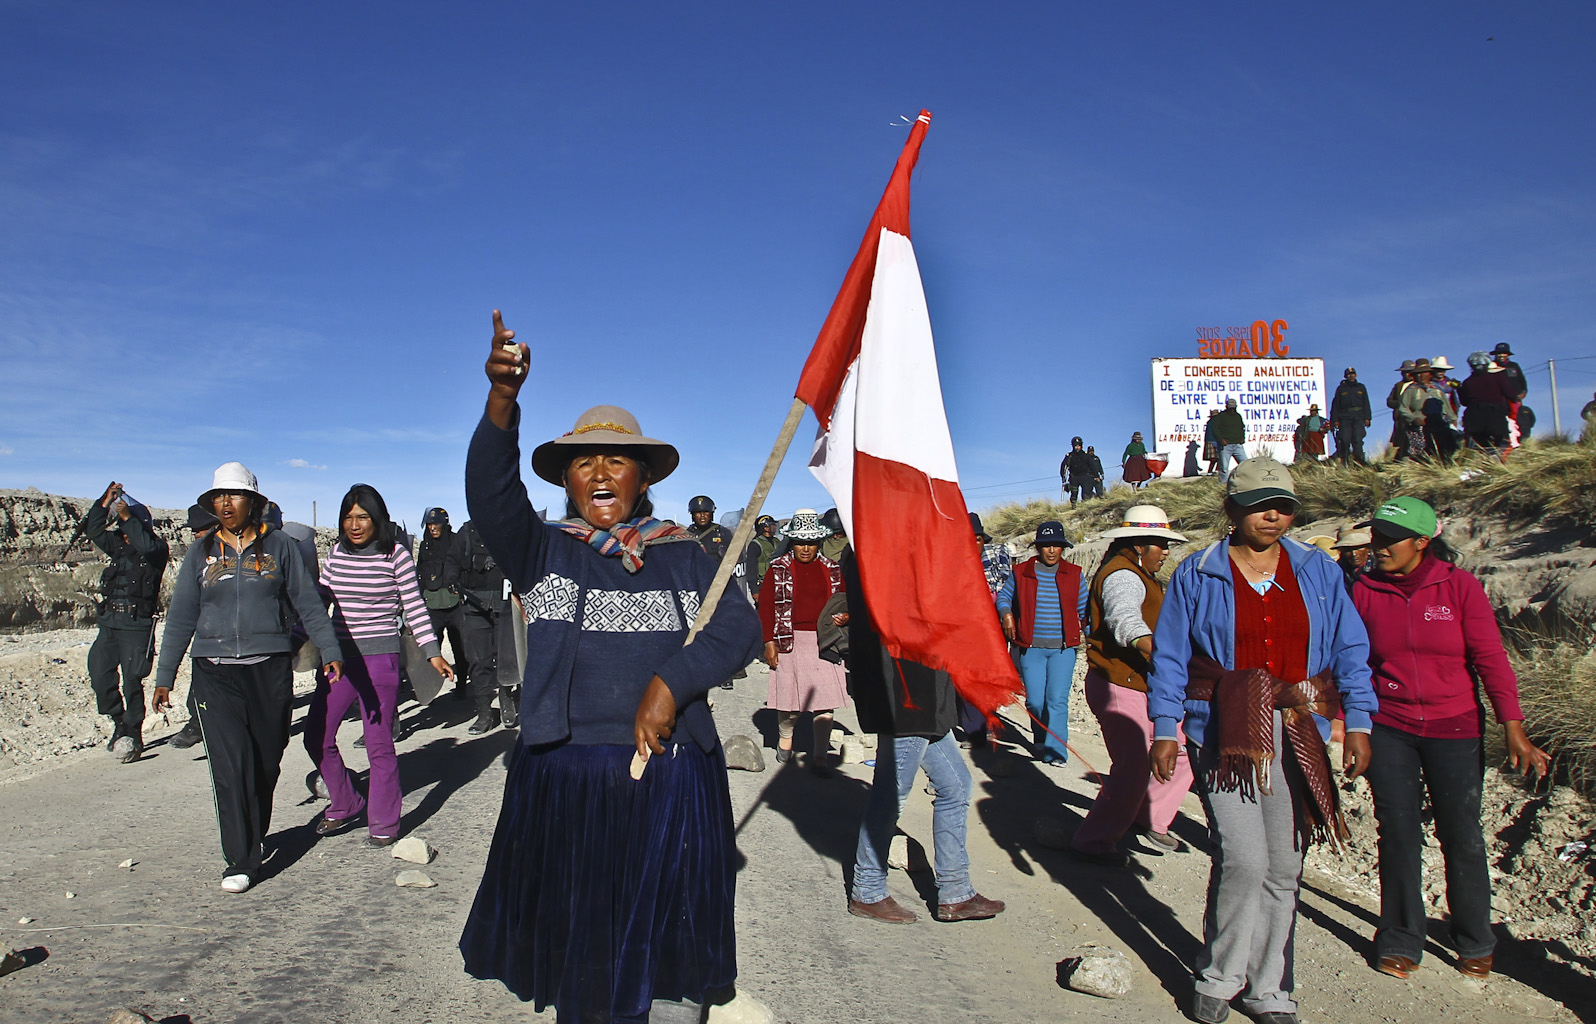 In Peru, local residents and mining companies have frequently clashed over water rights. AP Images.